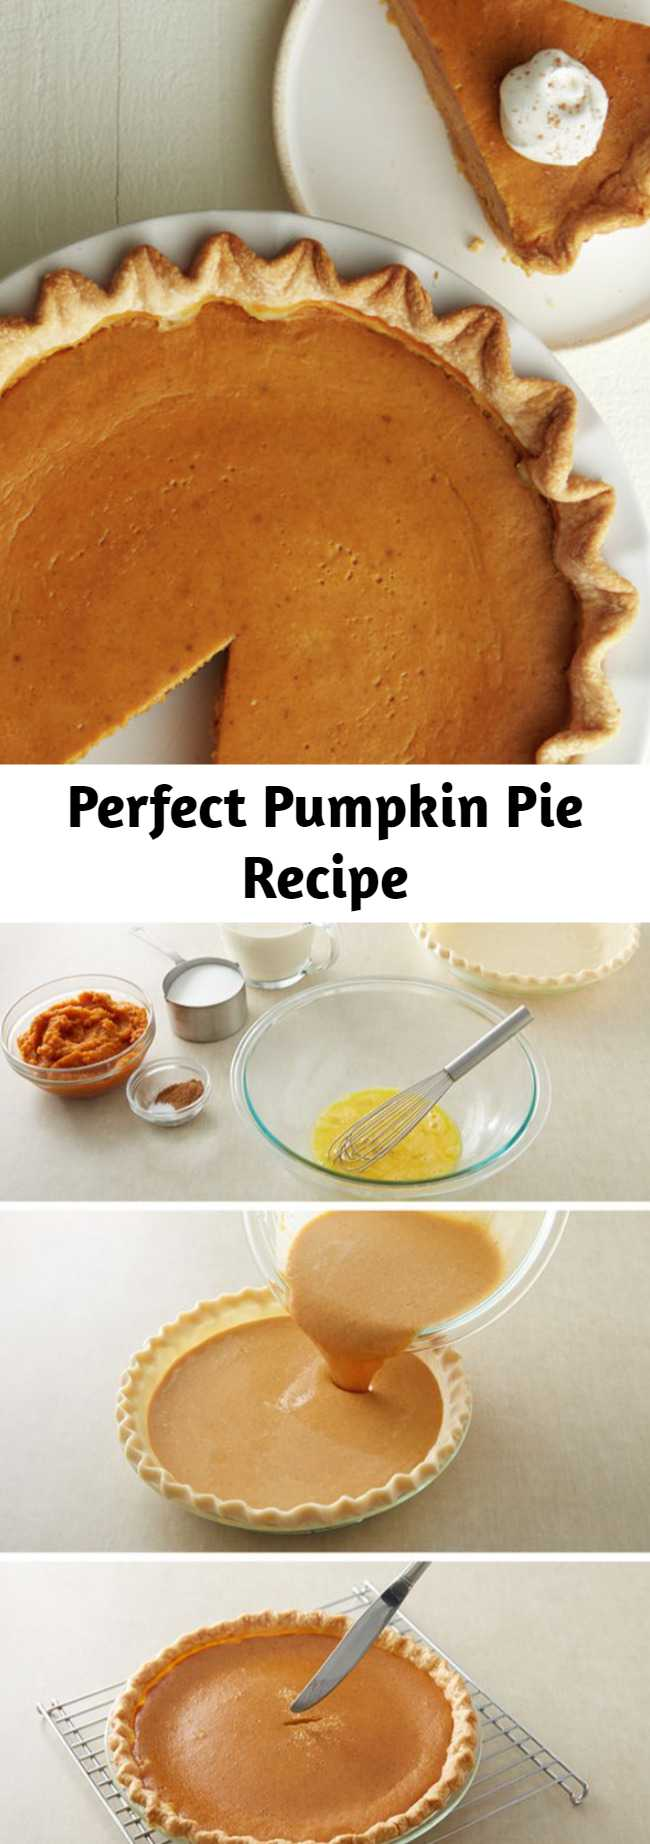 Perfect Pumpkin Pie Recipe - Pie? Easy? Yes and yes! Our refrigerated pie crust makes pie-making easier than ever. This recipe takes the worry out of pie-making and has step-by-step instructions. The end result will wow all your guests this holiday season! Save this pumpkin pie recipe to make for fall, Thanksgiving or Christmas this year!